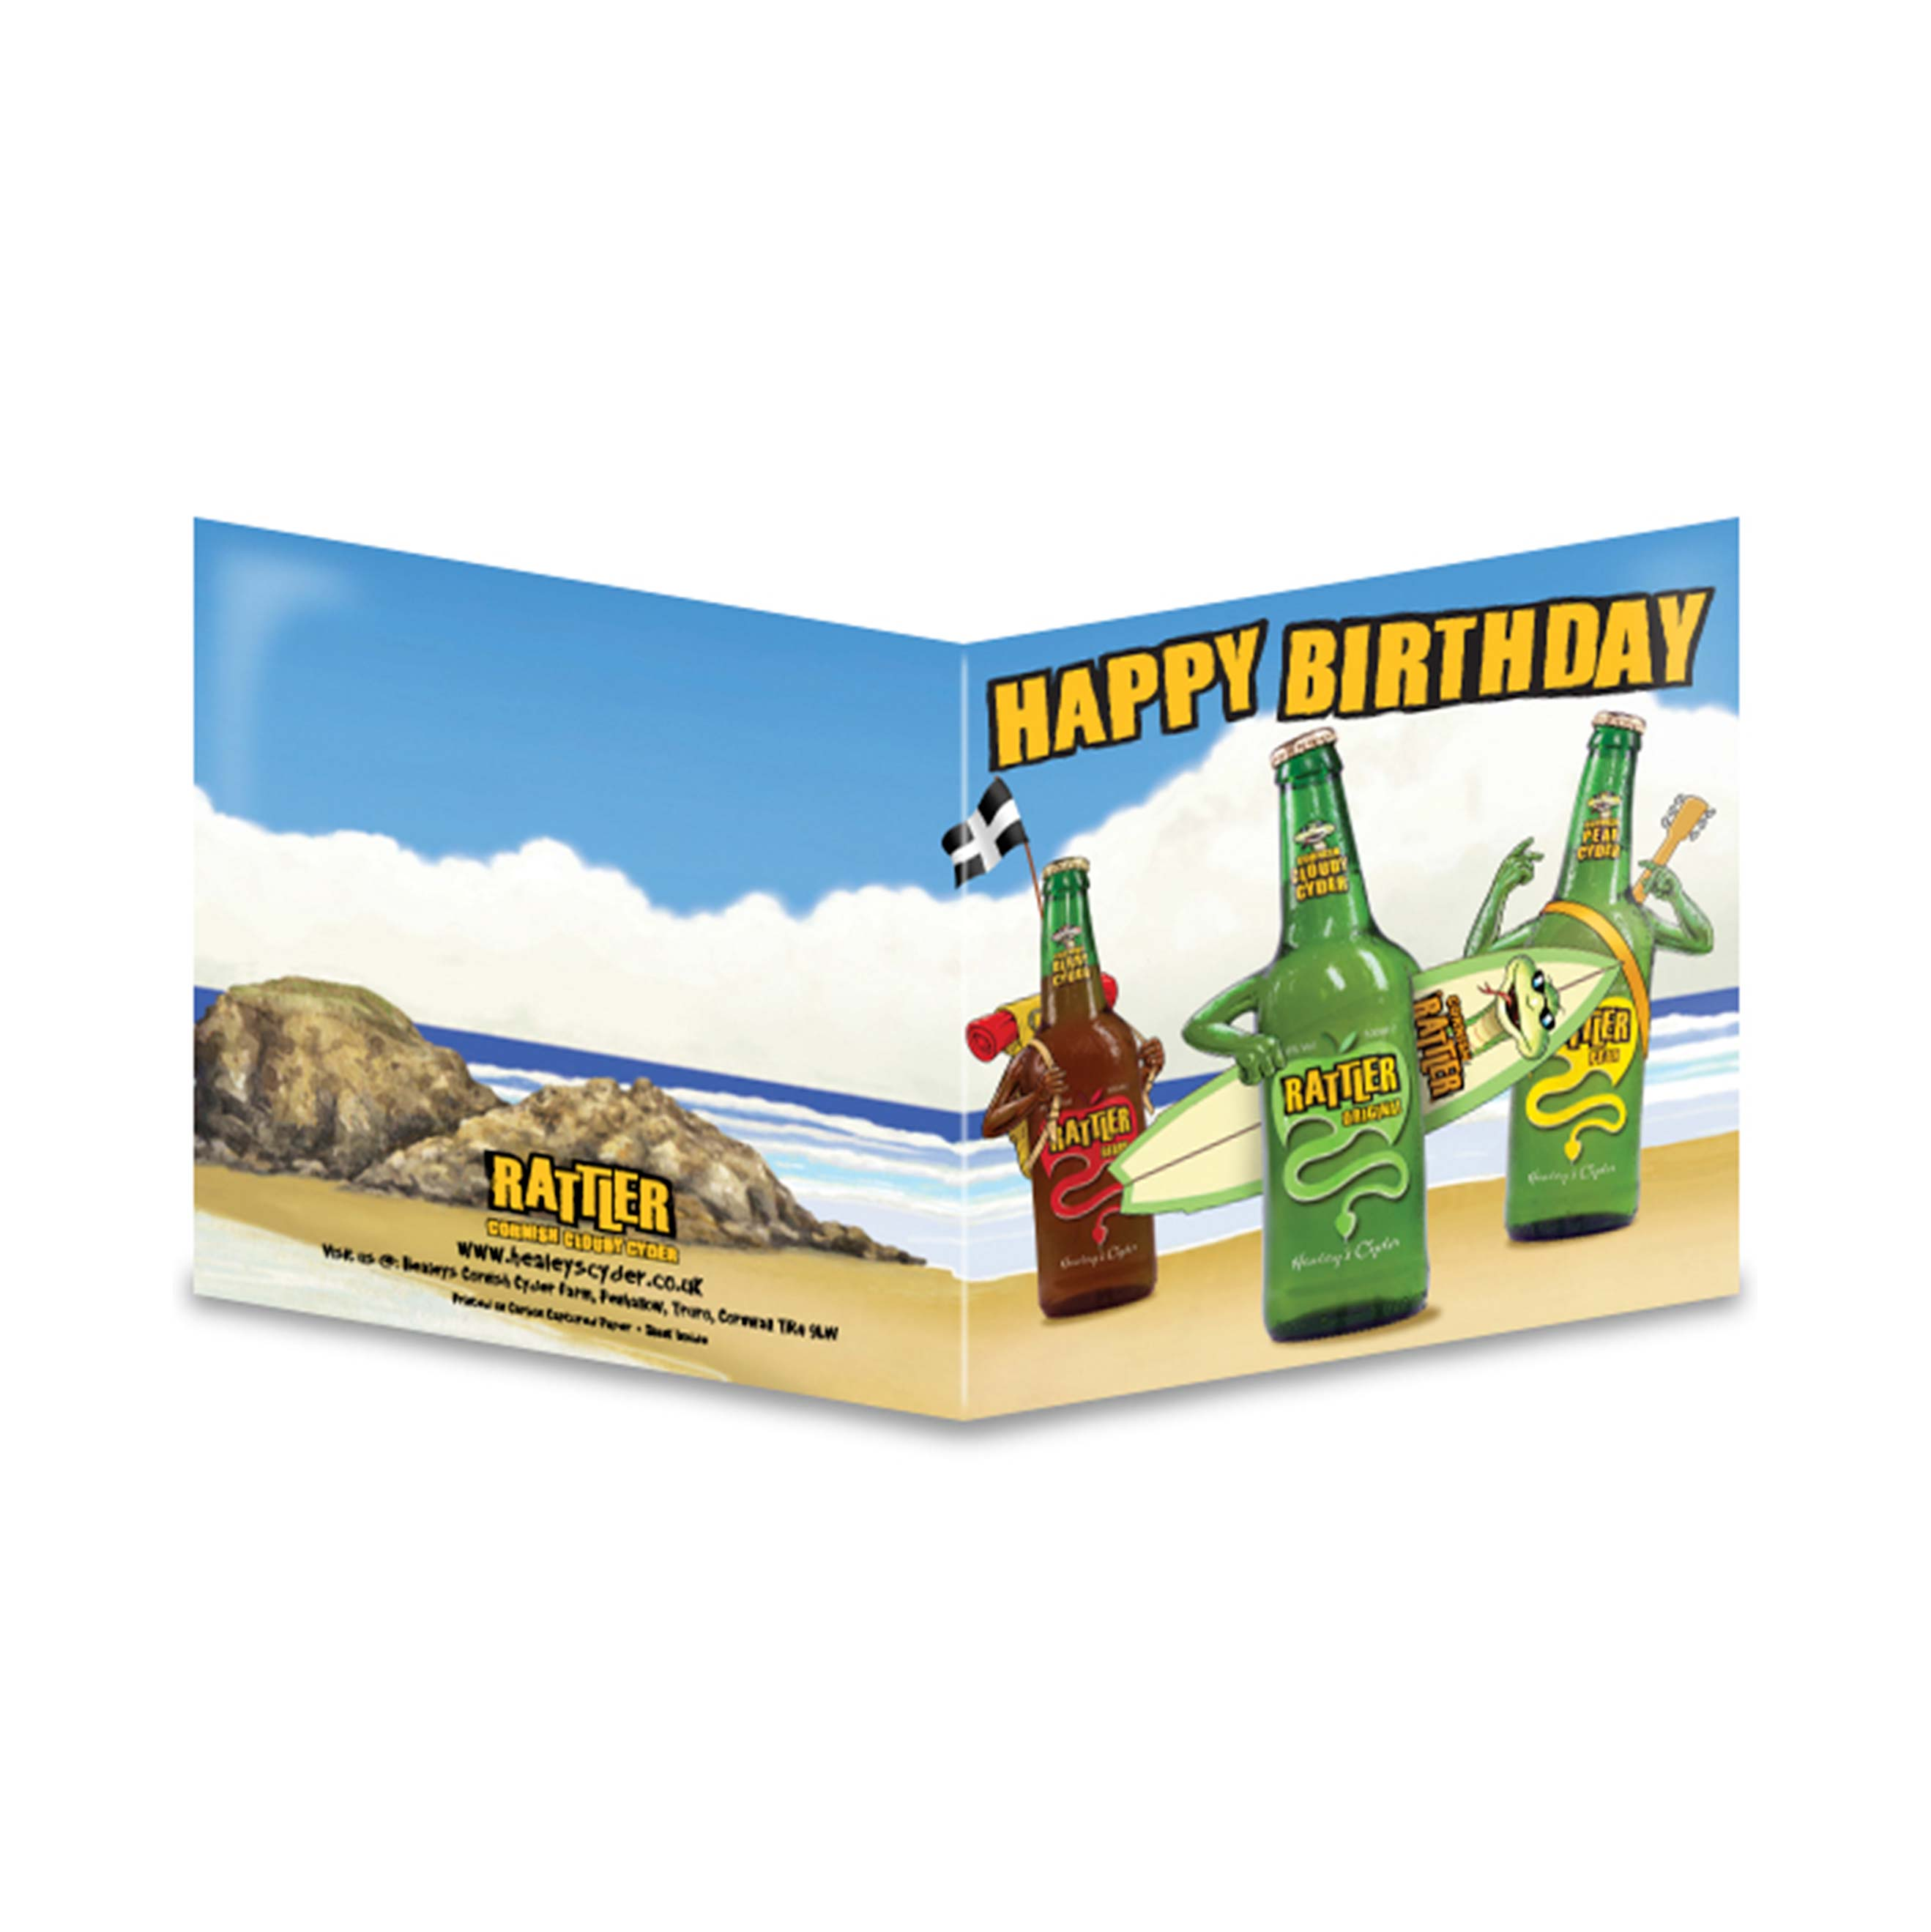 Magnificent Rattler Birthday Card Healeys Cyder Farm Online Shop Personalised Birthday Cards Paralily Jamesorg